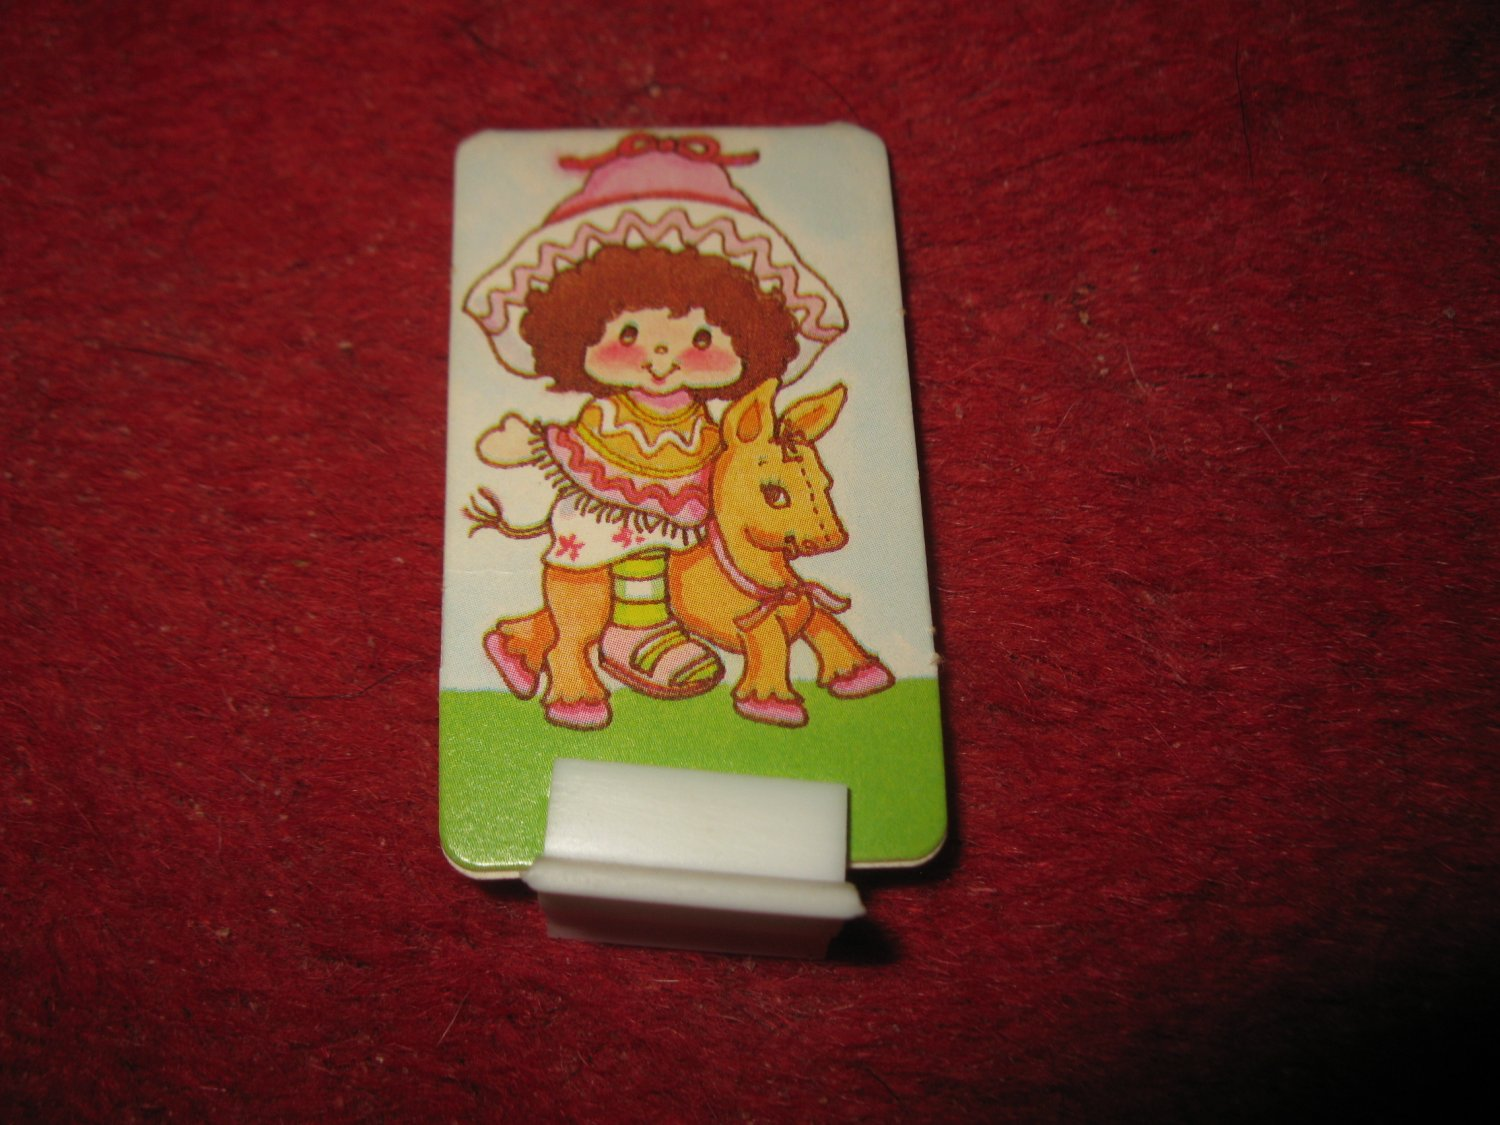 1983 Strawberry Shortcake Housewarming Surprise Board Game Piece: Cafe Ole Character